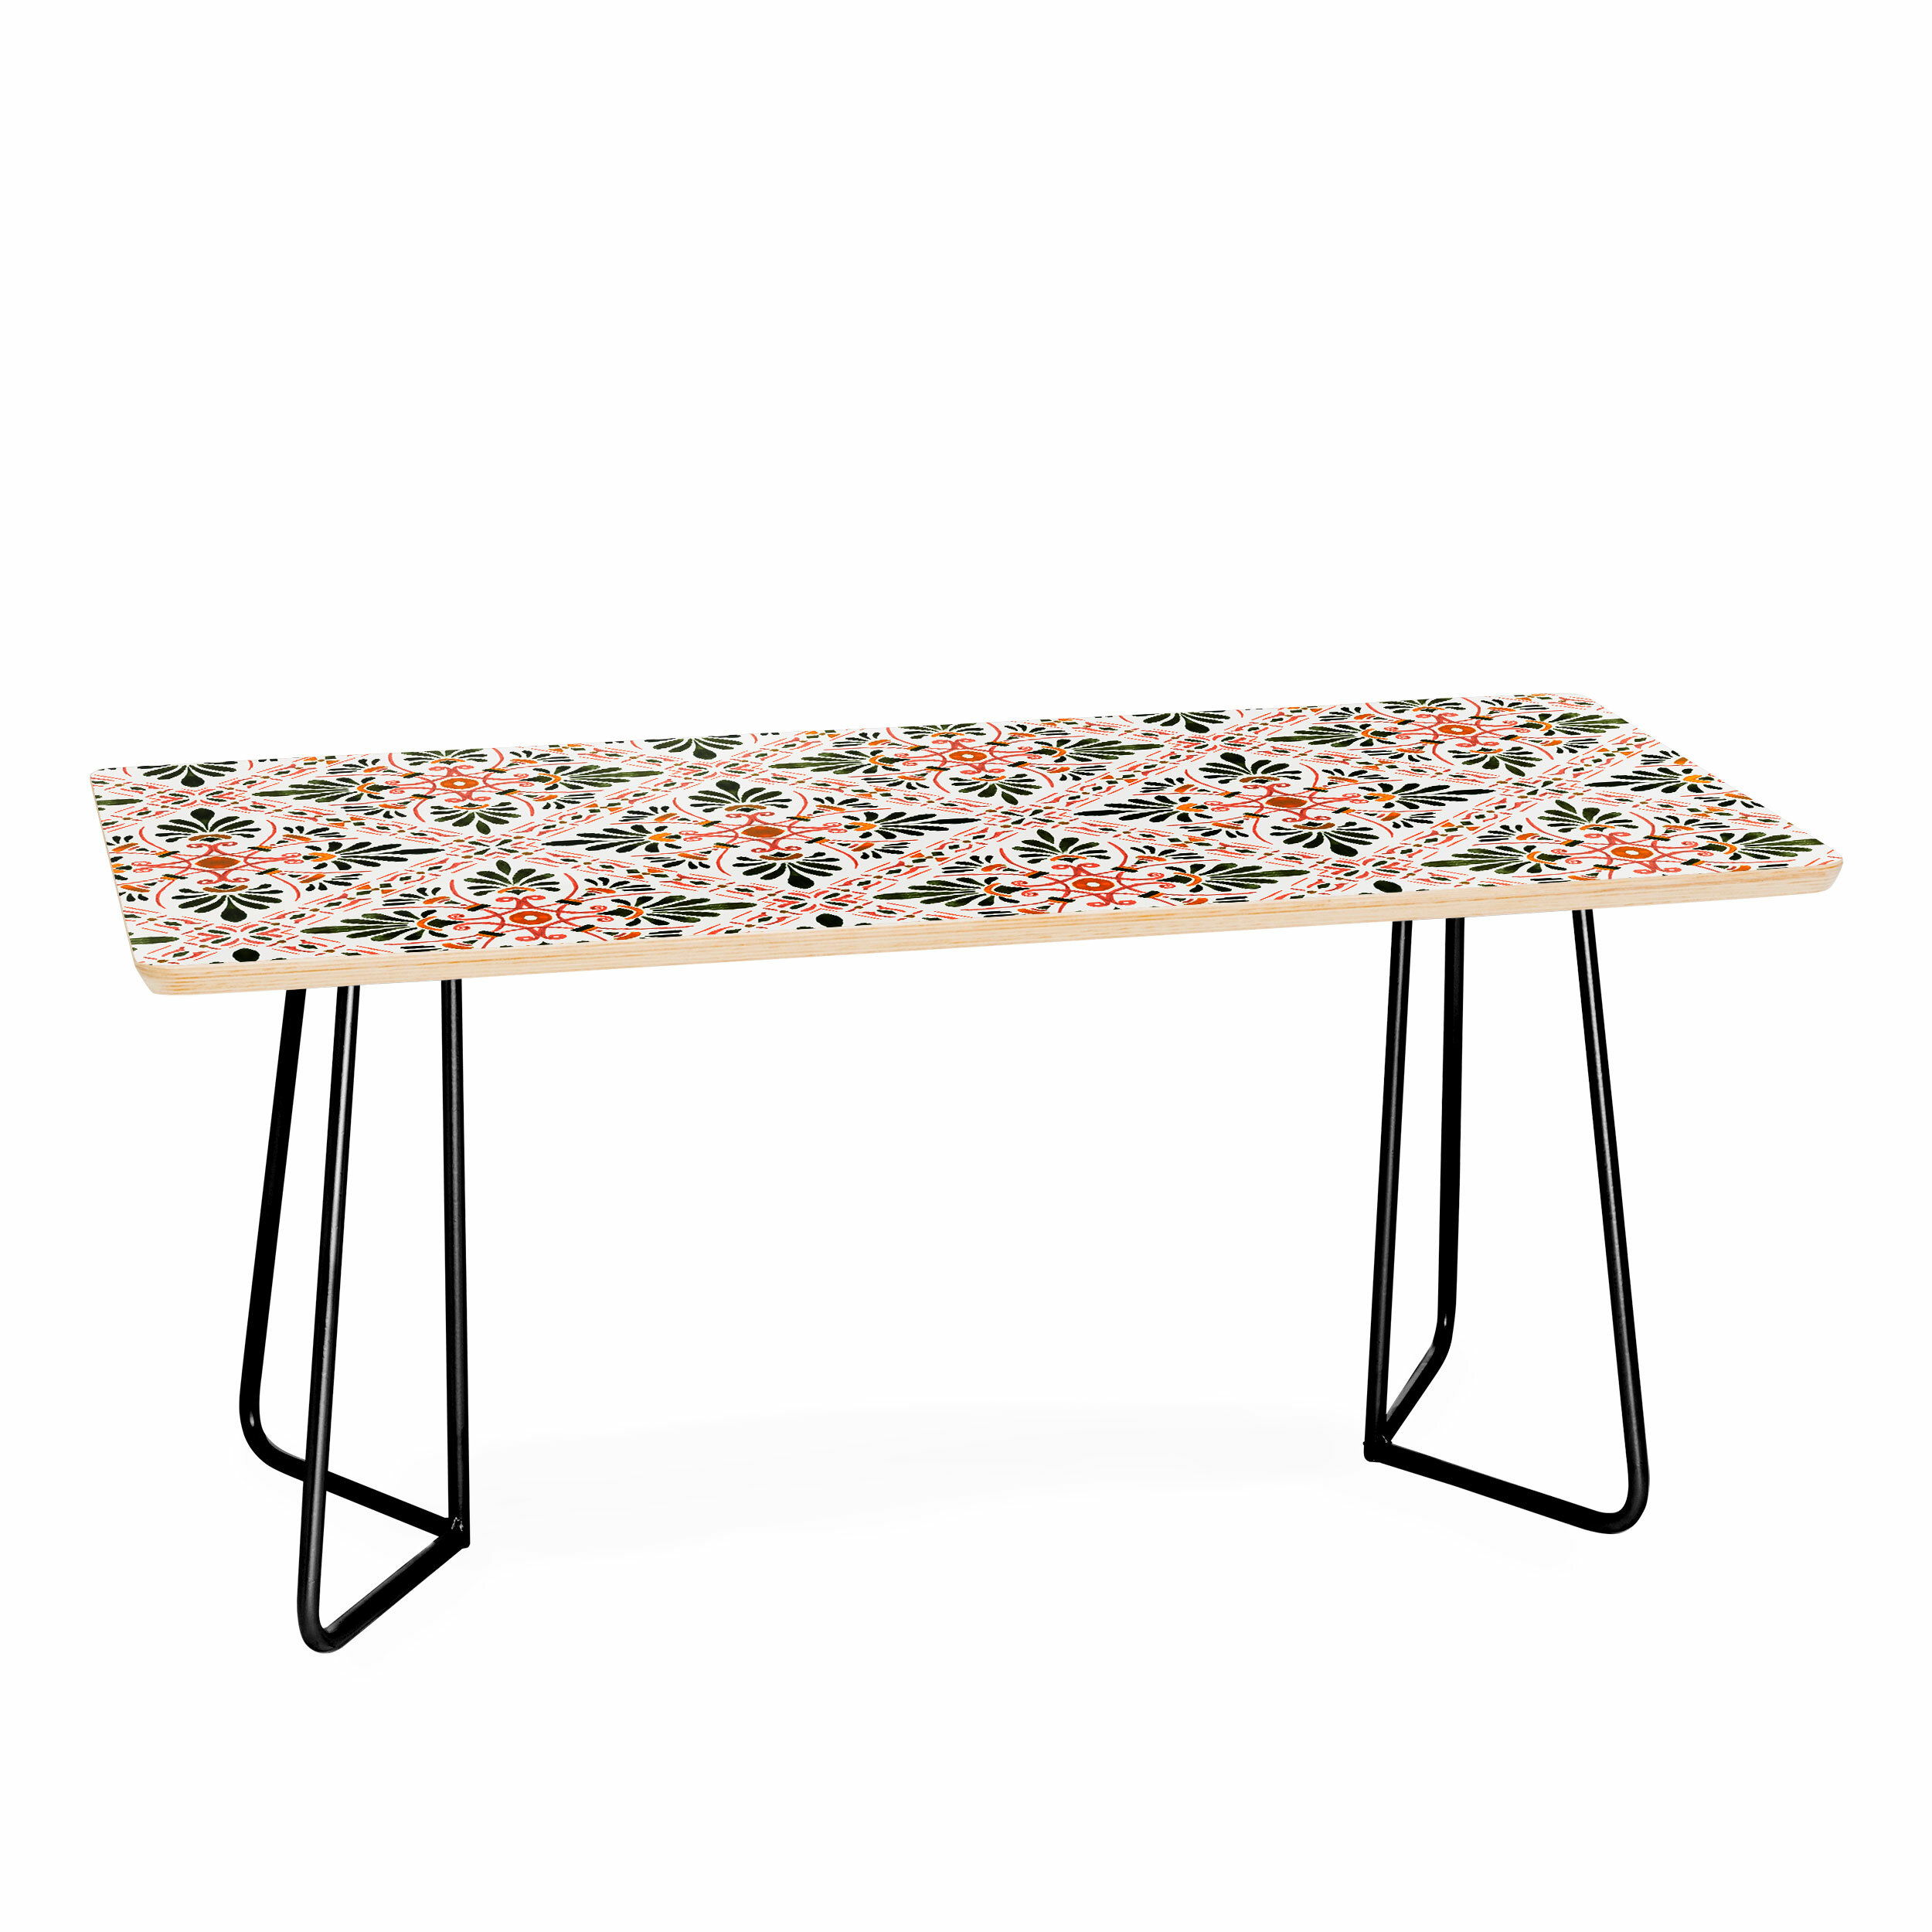 - East Urban Home Andalusian Mosaic Coffee Table Wayfair